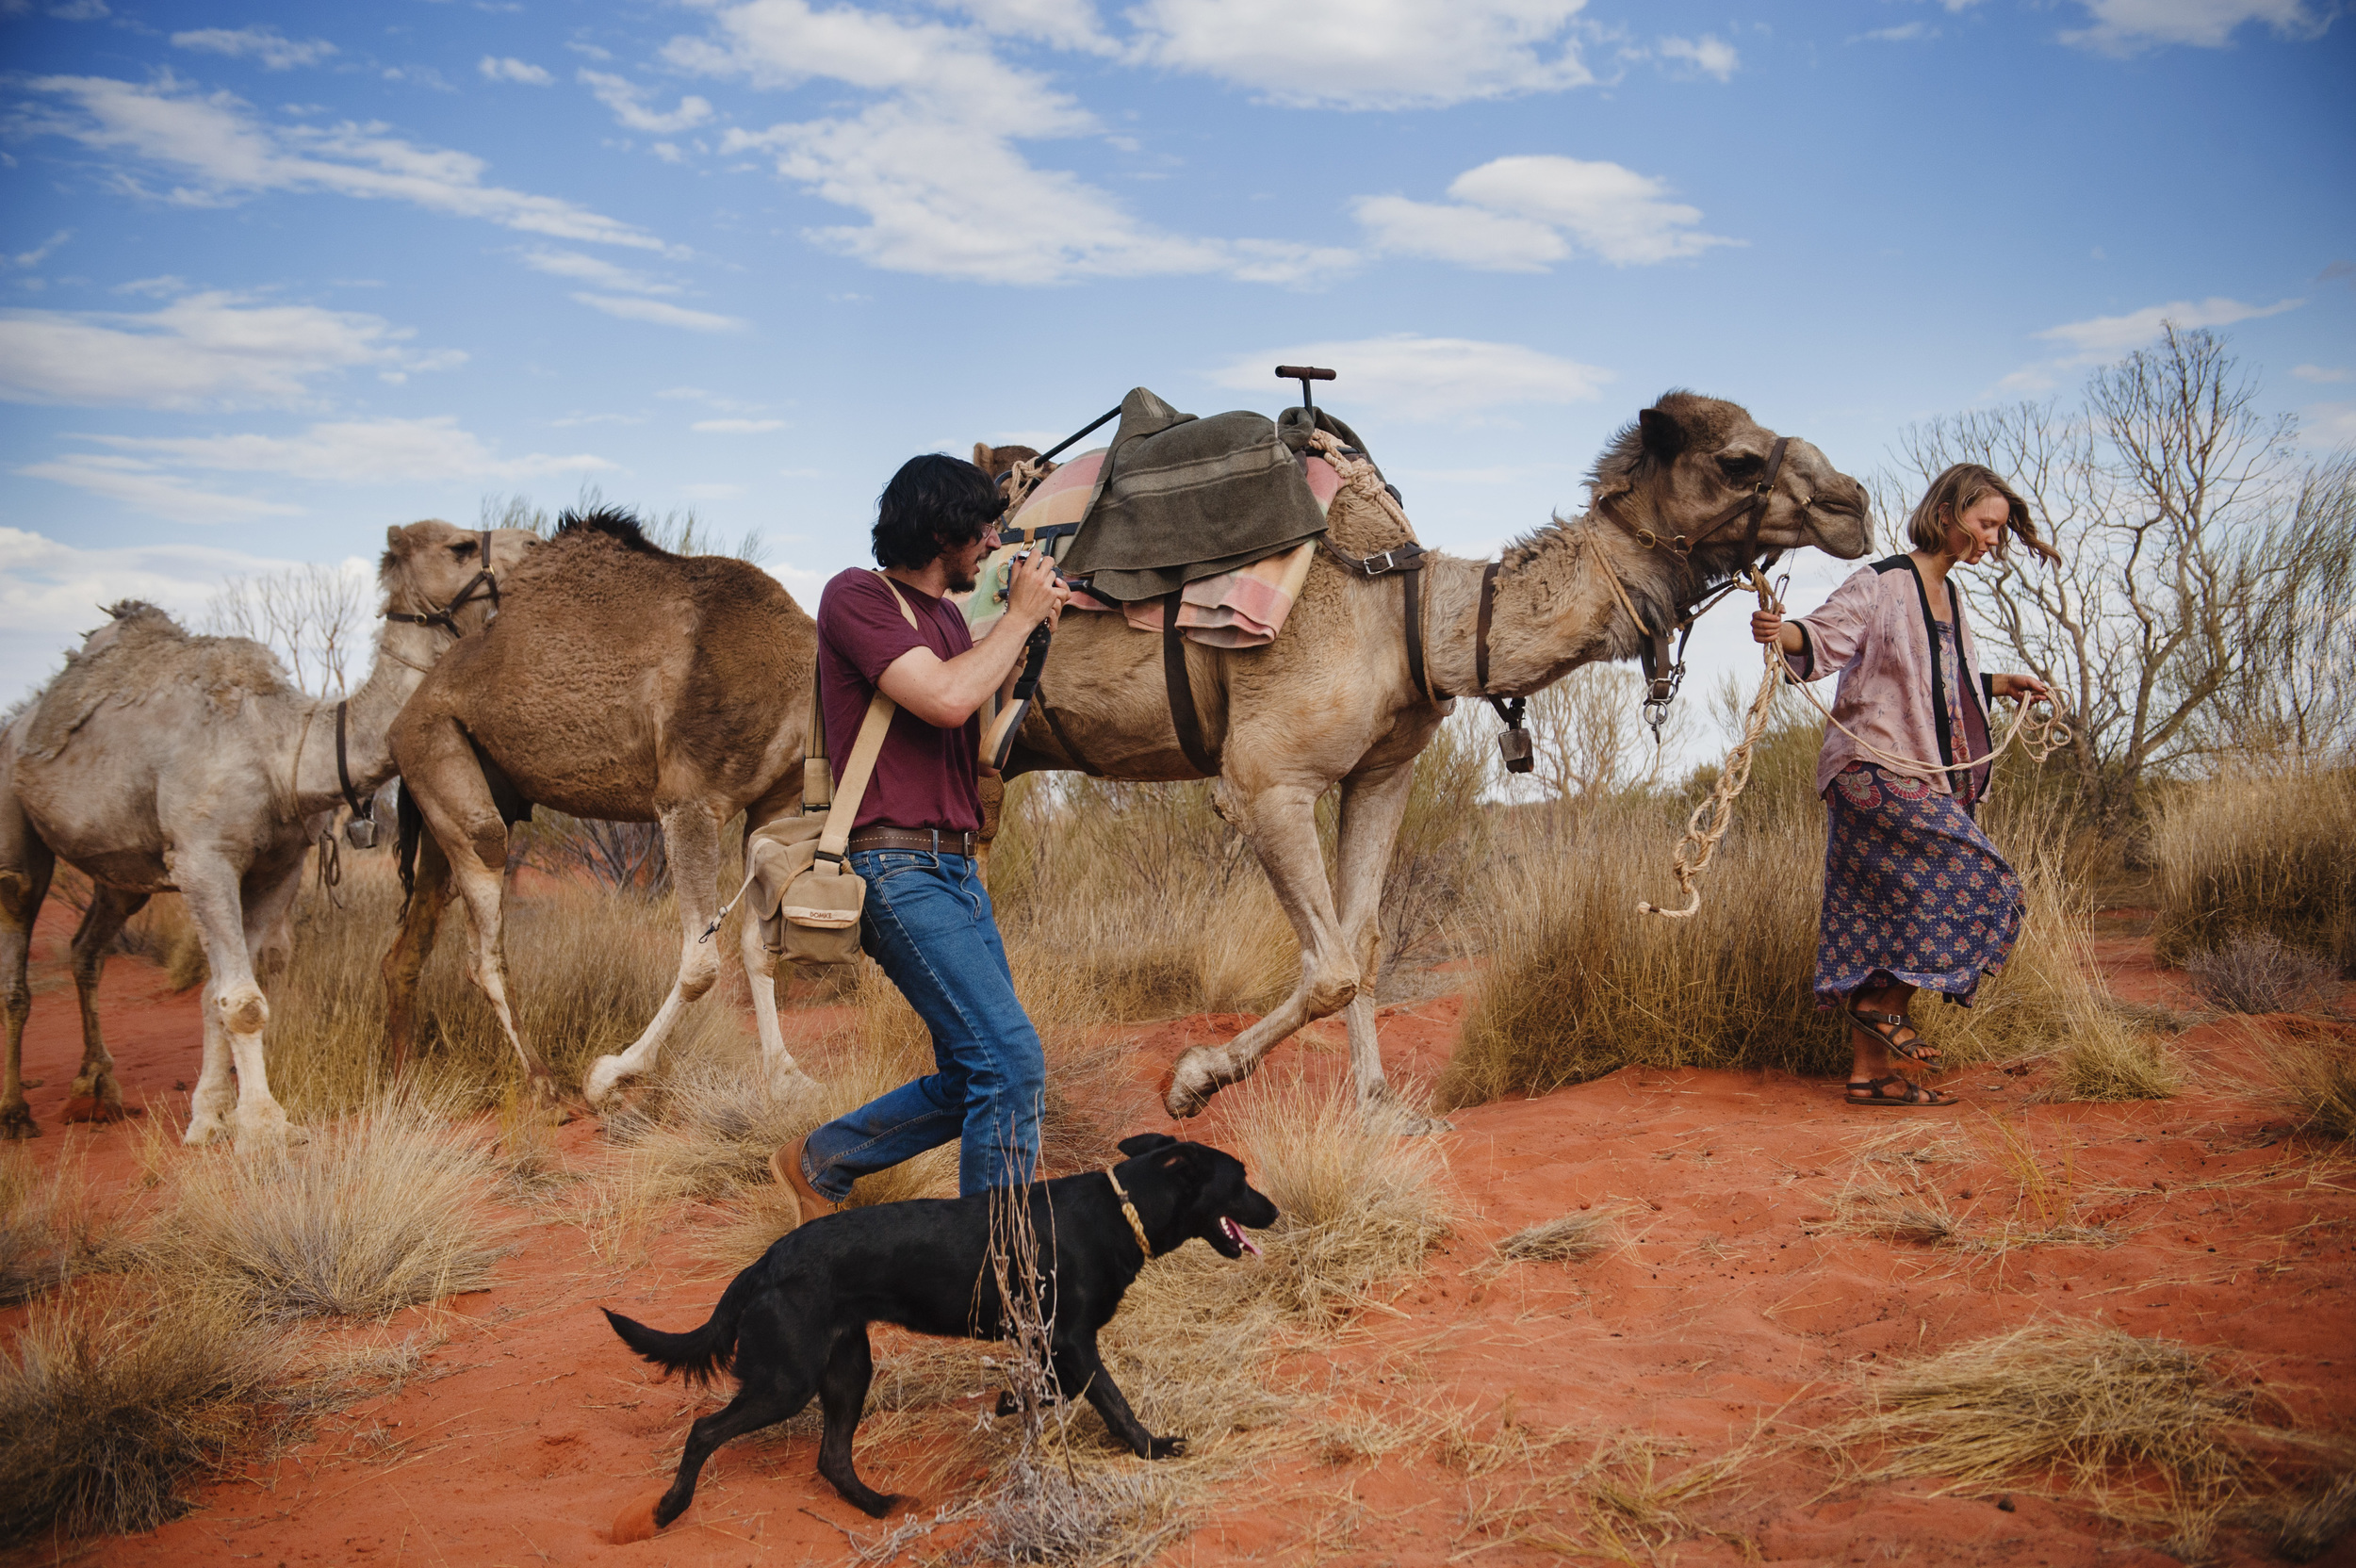 Rick (Adam Driver) shoots Robyn (Mia Wasikowska) at Ayers Rock.   ©   Matt Nettheim/See-Saw Films